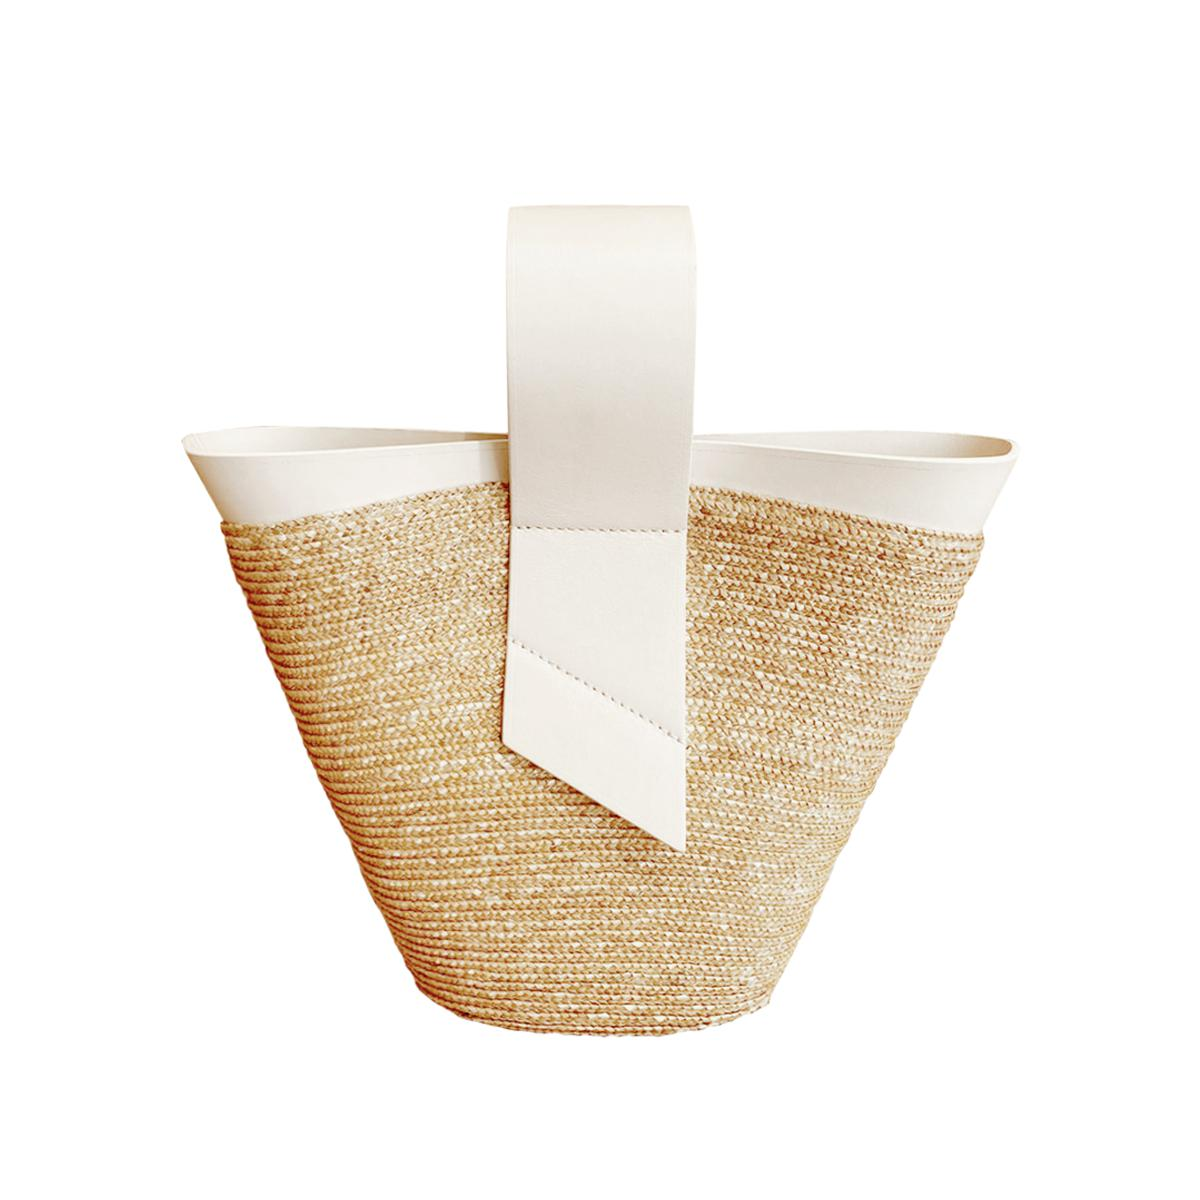 Amphora Straw and Leather White